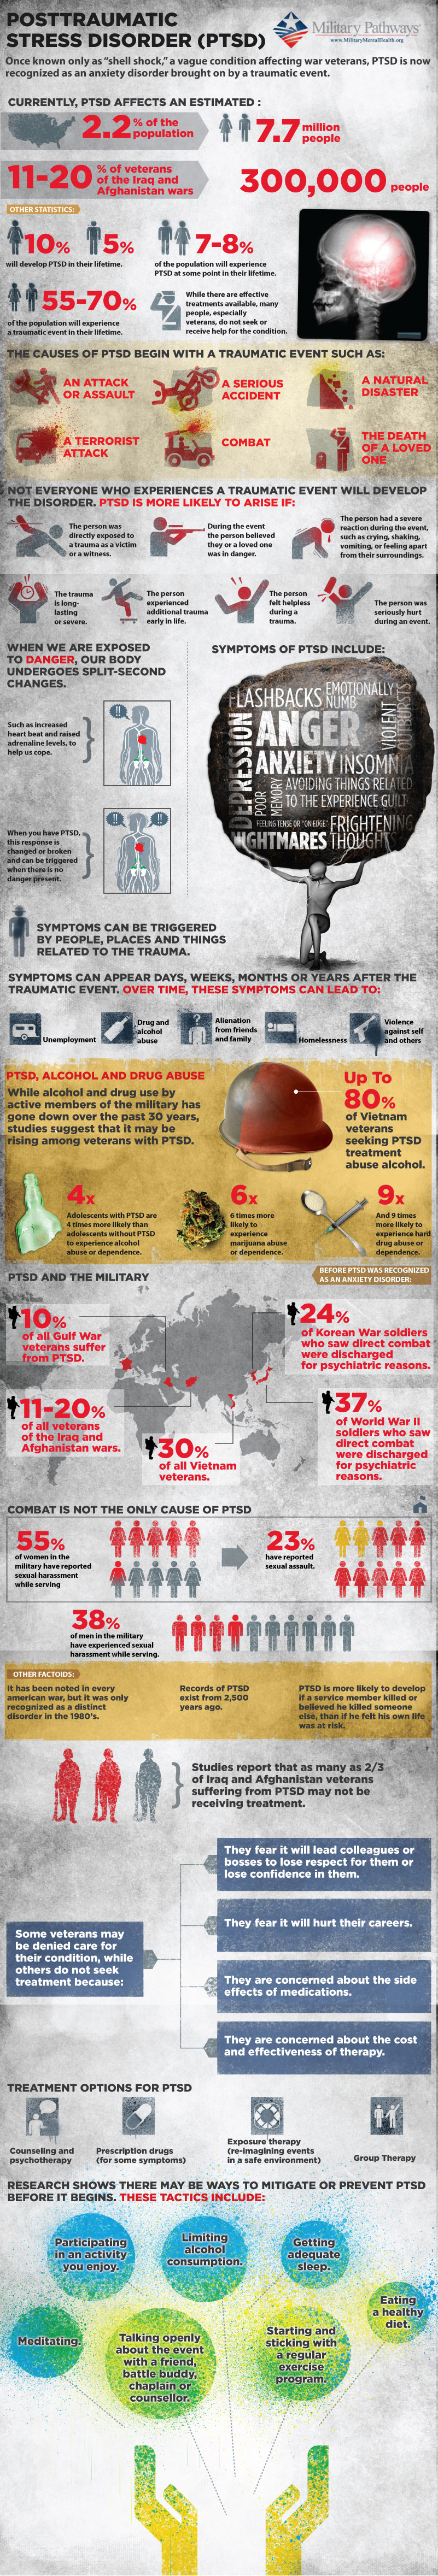 PTSD Statistics and Facts